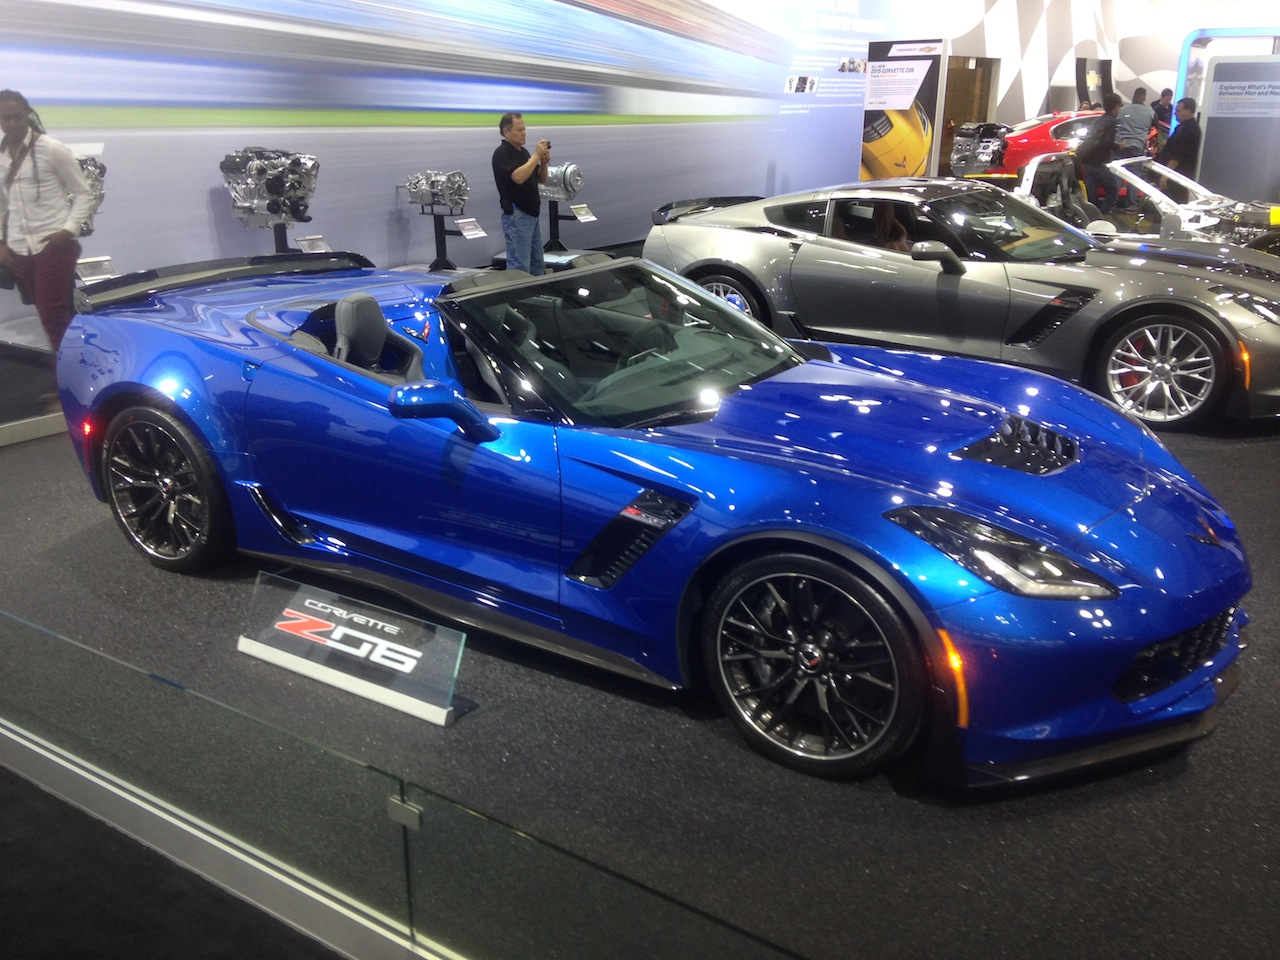 American Muscle Cars Of The New York Auto Show